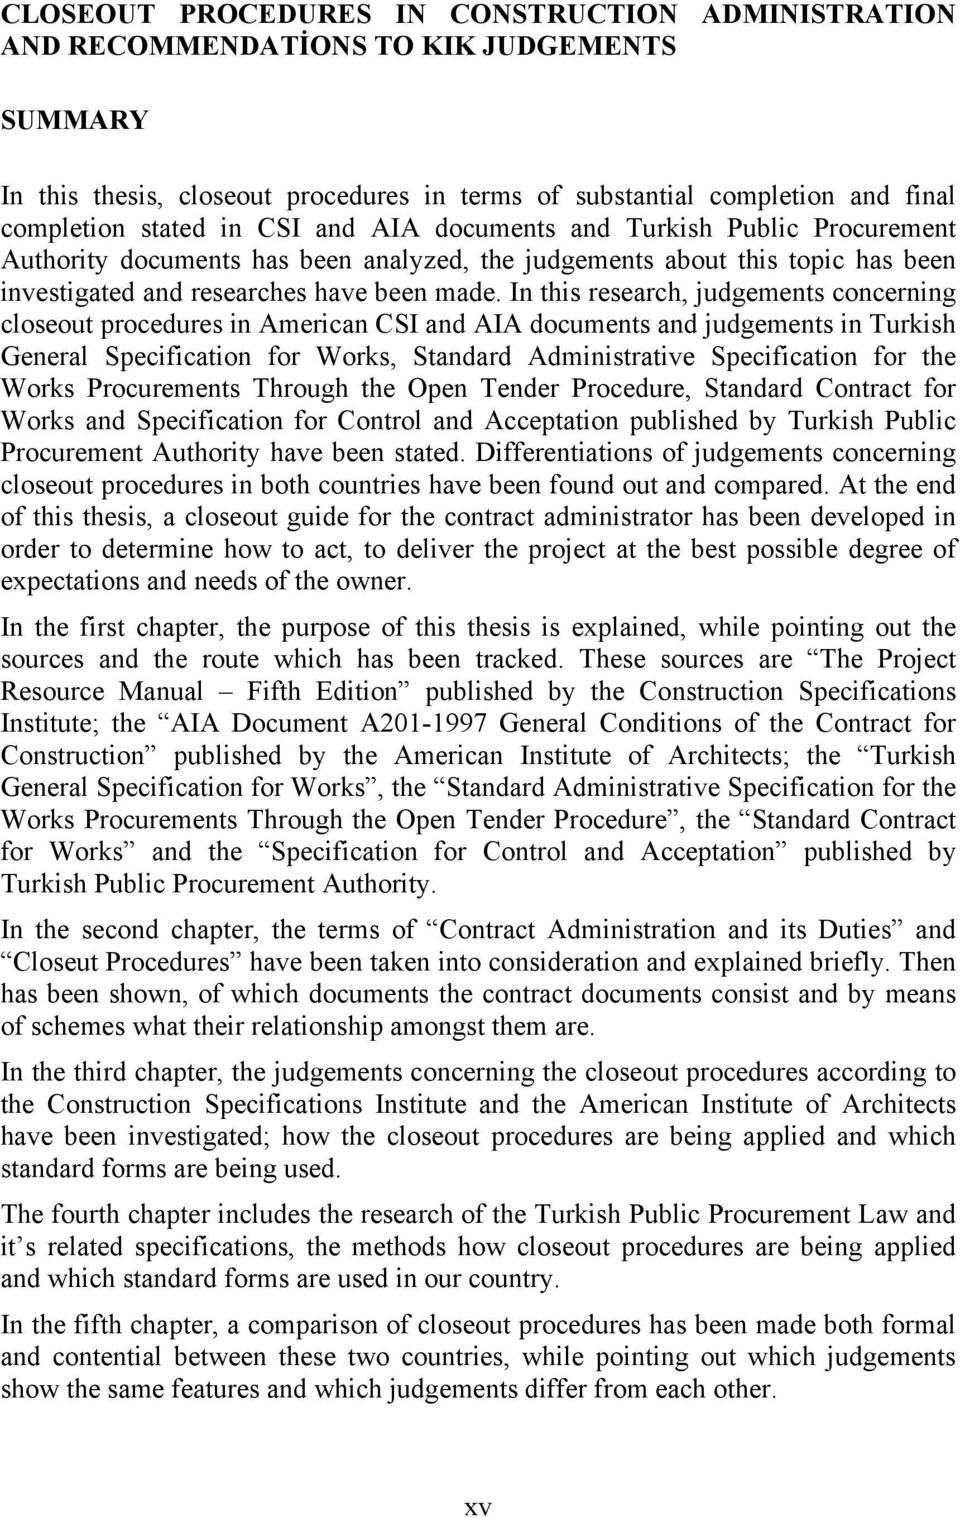 In this research, judgements concerning closeout procedures in American CSI and AIA documents and judgements in Turkish General Specification for Works, Standard Administrative Specification for the